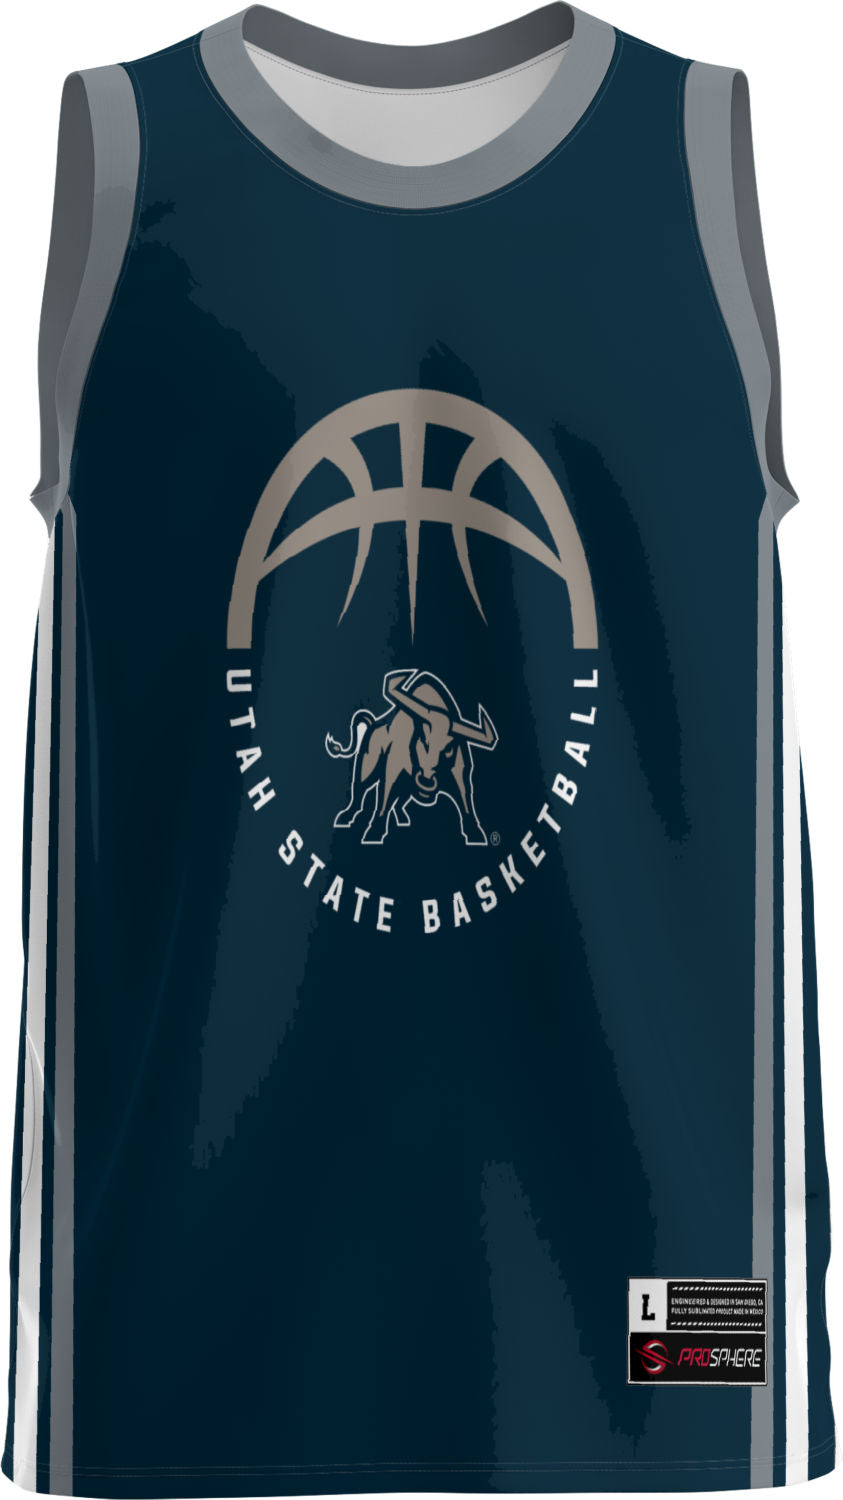 USU Basketball Adult Replica Fan Jersey - Classic